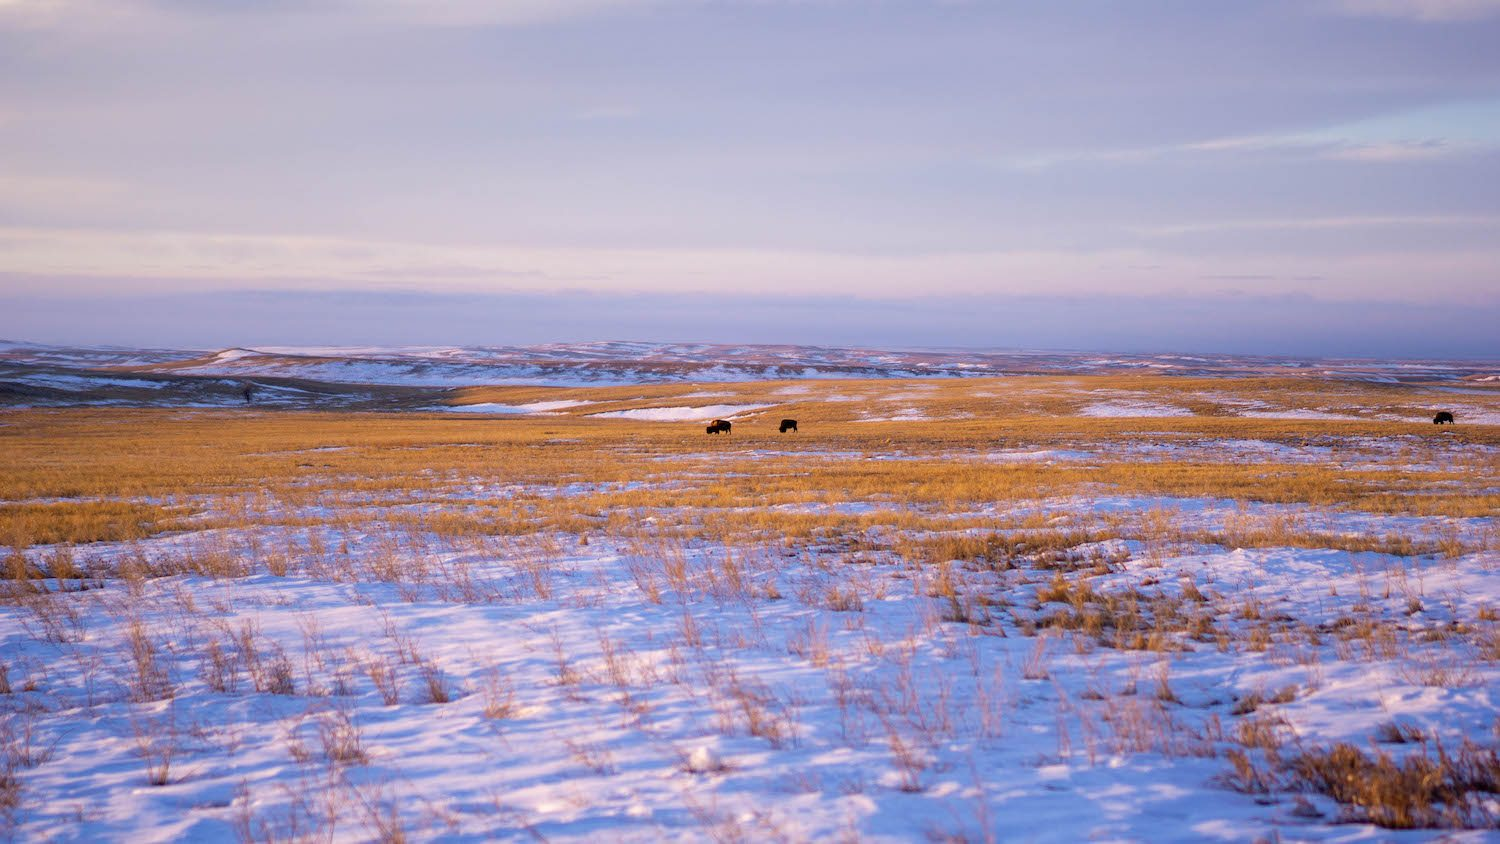 Bison graze grasslands